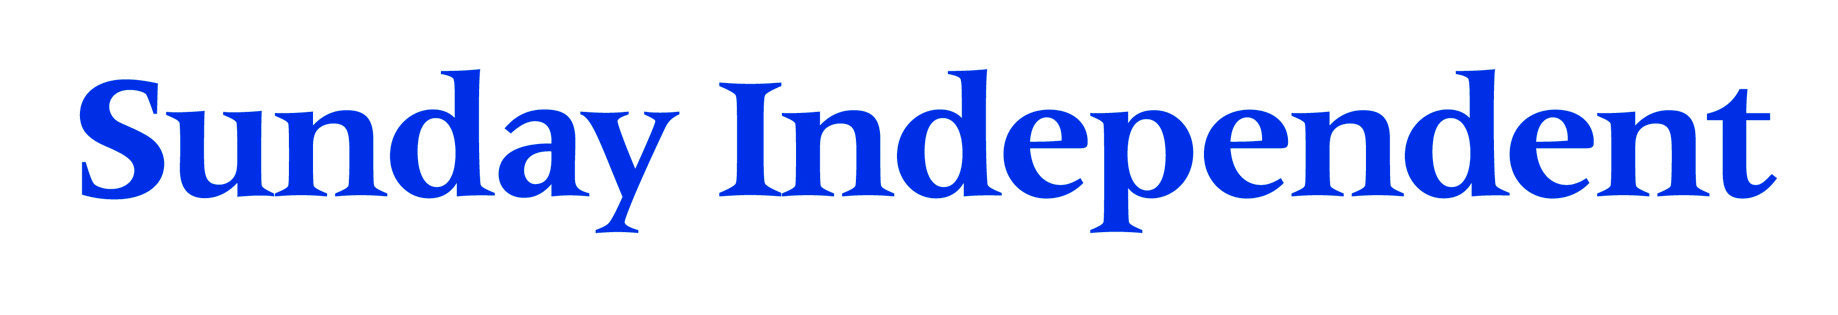 Page-1-Sunday-Independent-logo (1)